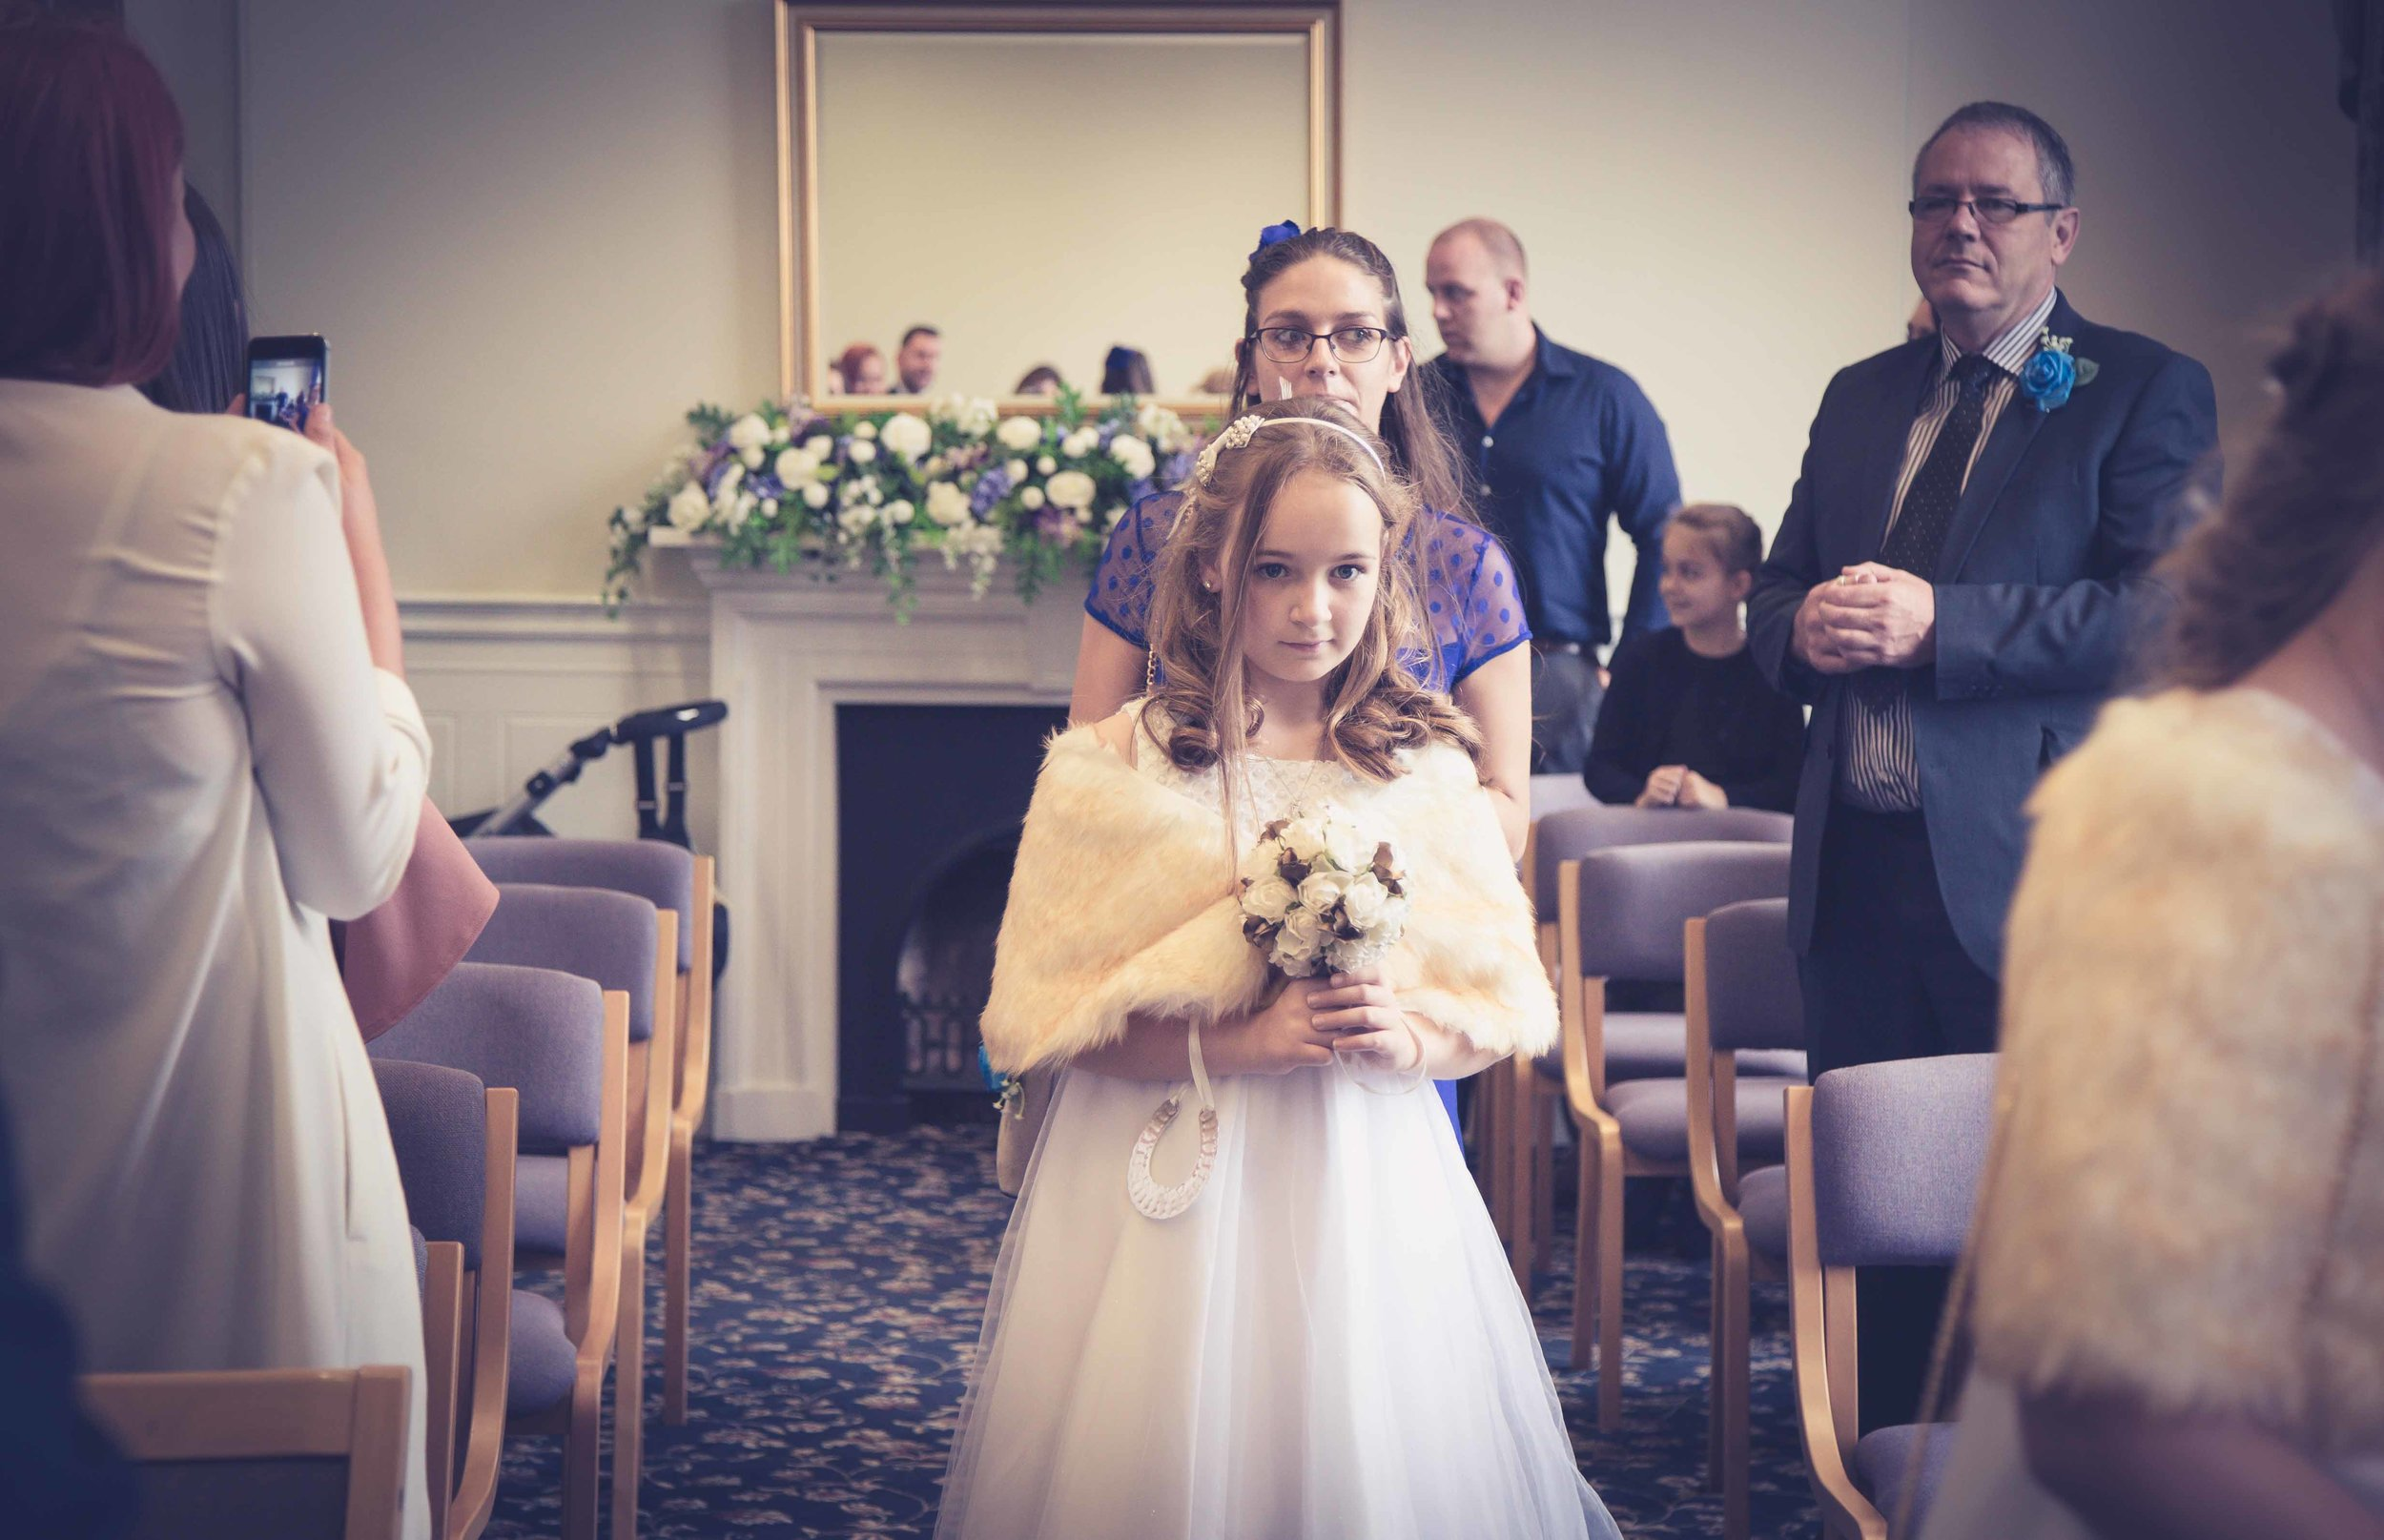 wedding-photos-at-st-georges-hall-liverpool (14 of 122).jpg